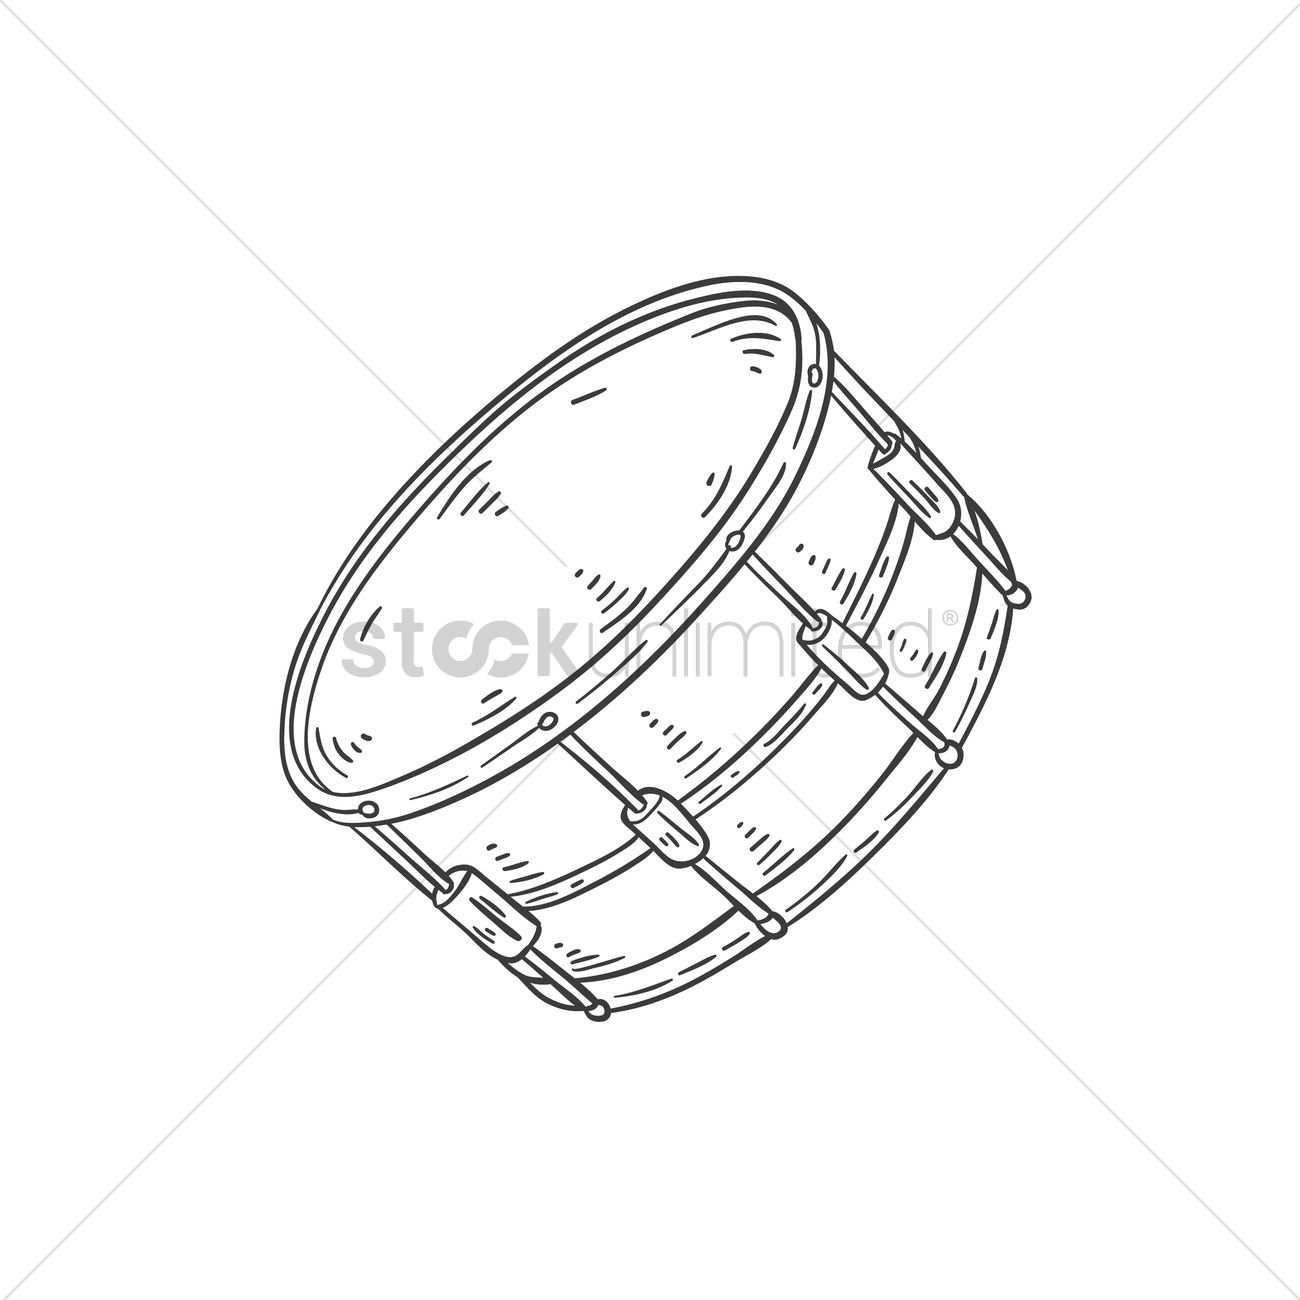 1300x1300 Snare Drum Vector Image